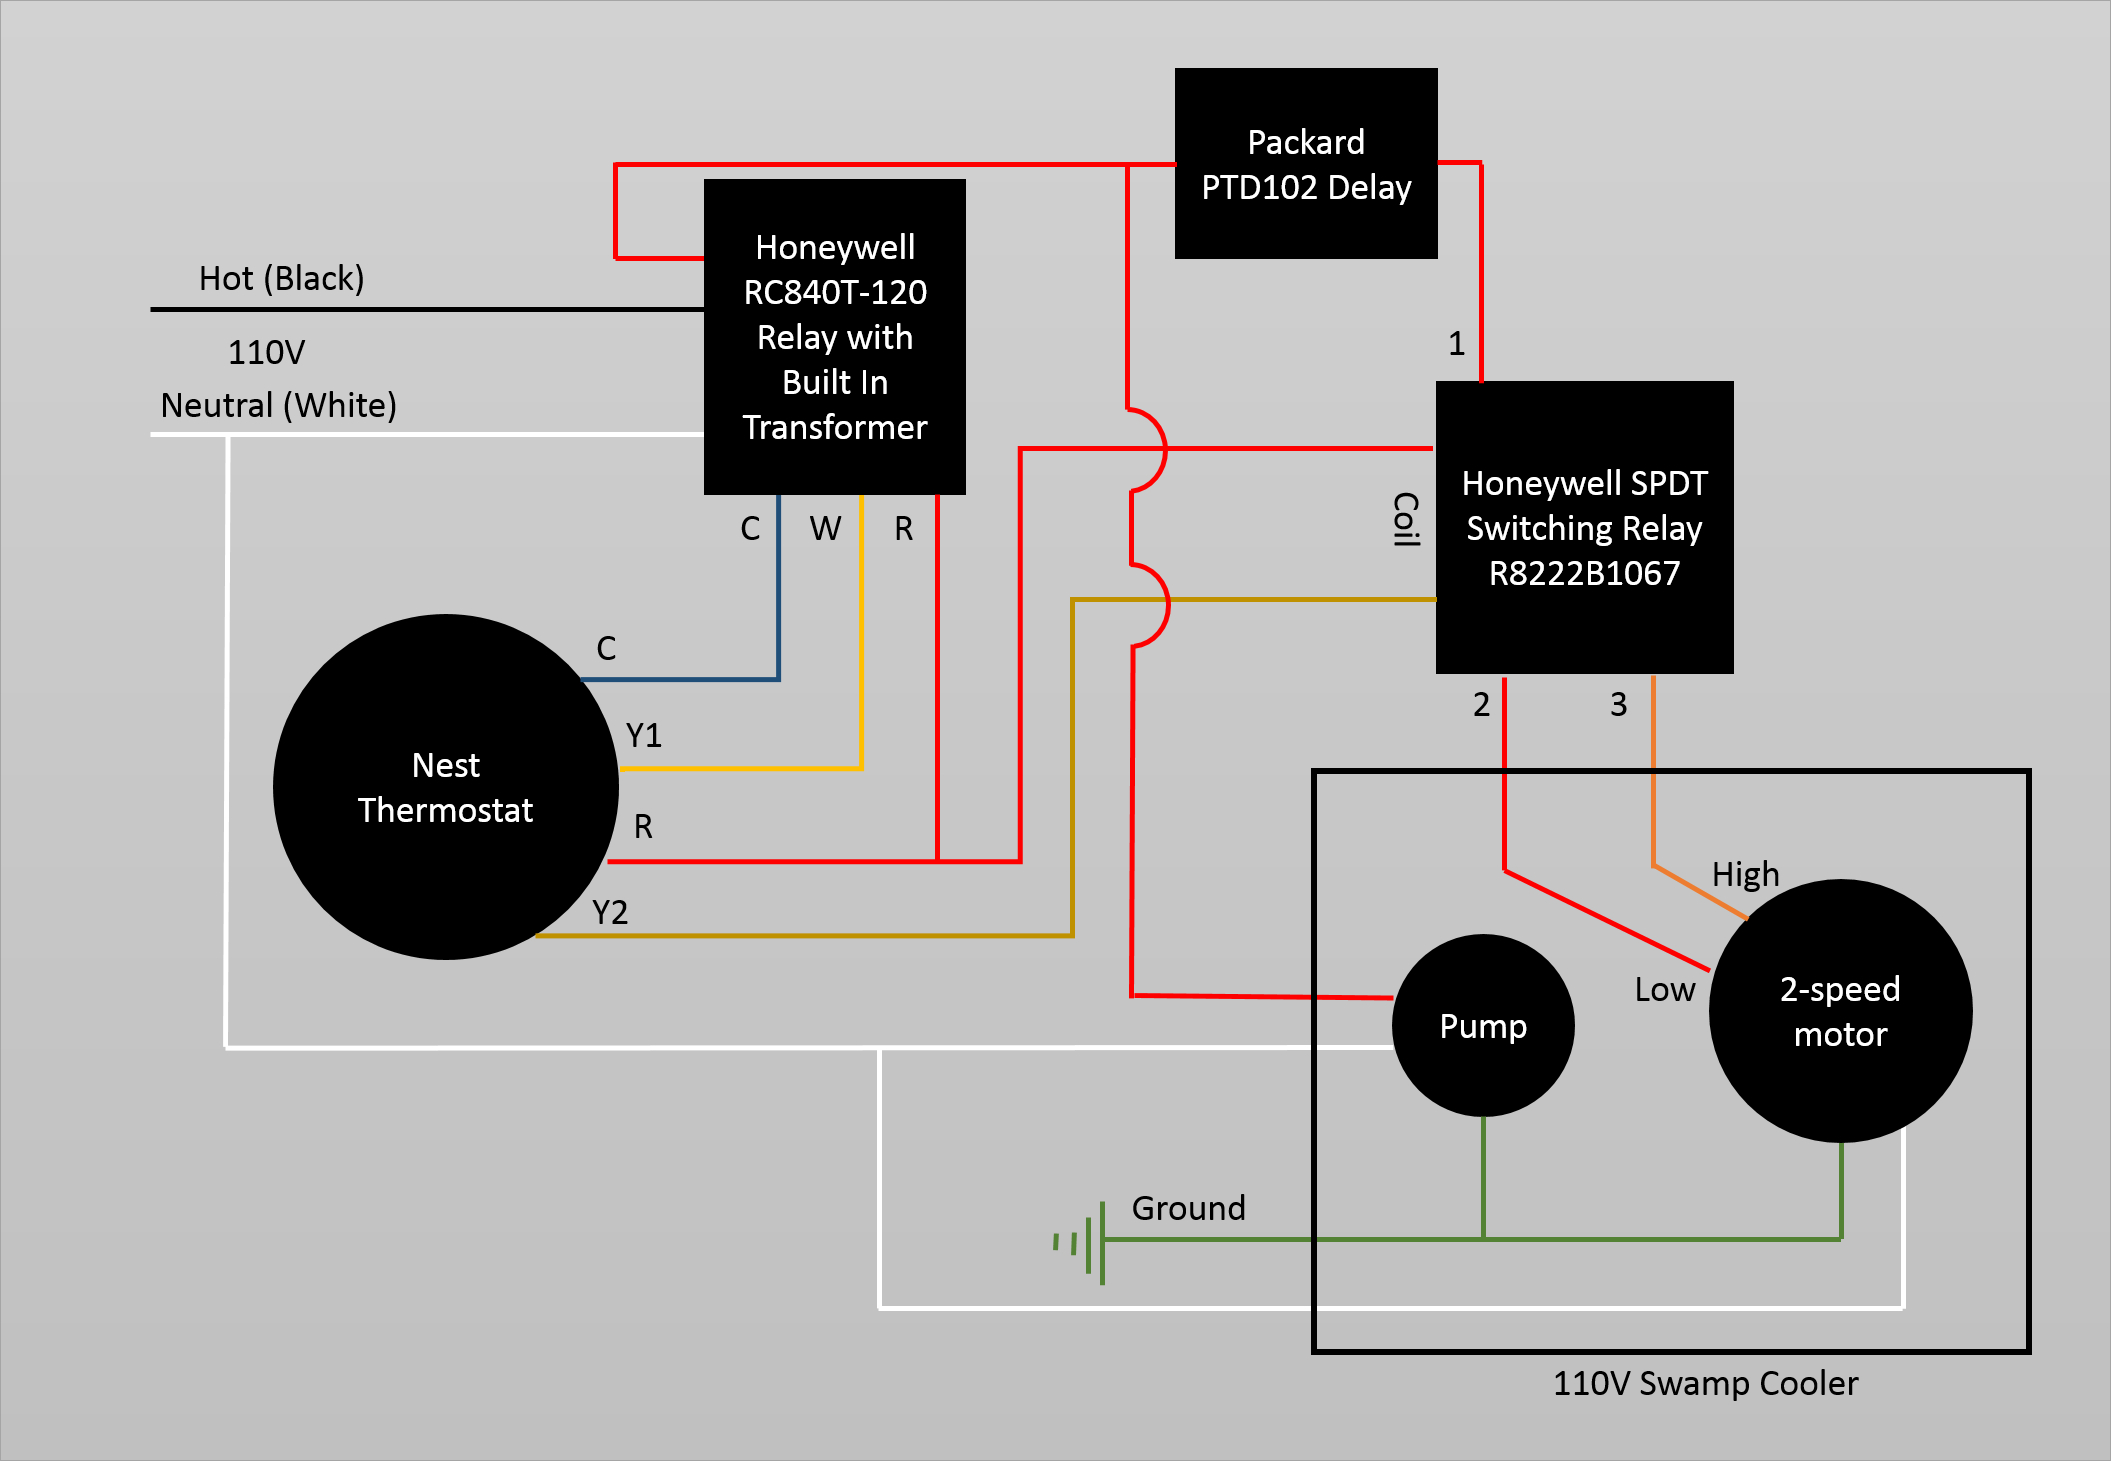 Wiring - Controlling 110V Swamp Cooler Using Nest Thermostat - Home - My Nest Wiring Diagram